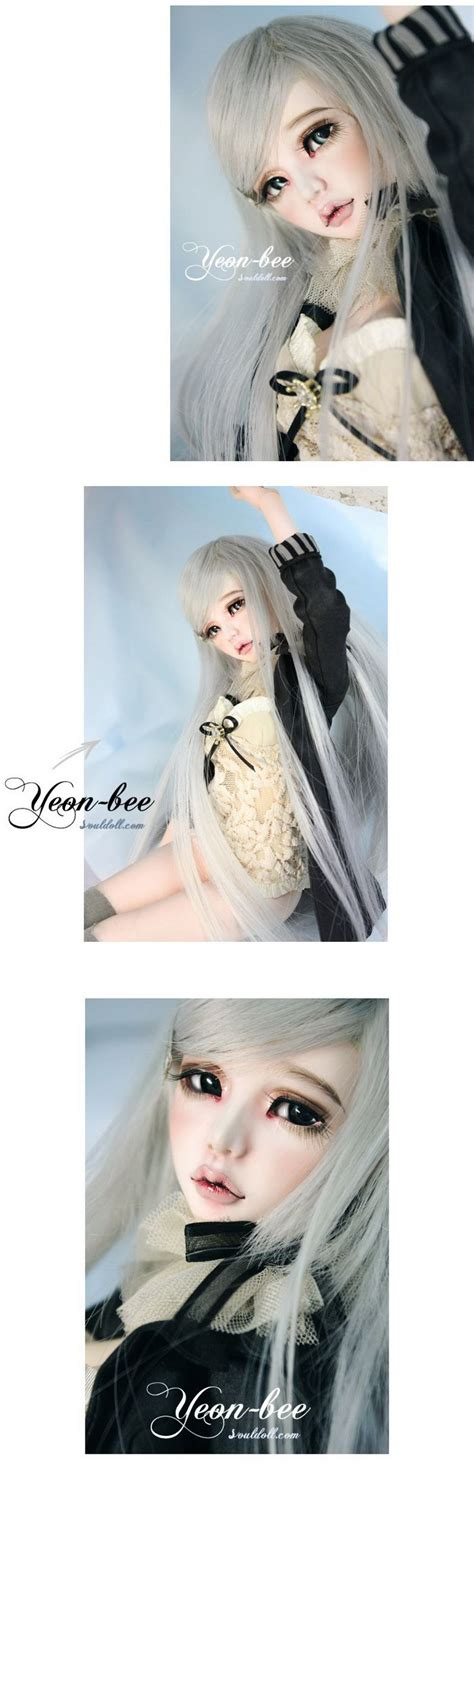 jointed doll accessories 107 best bjd soul dolls images on